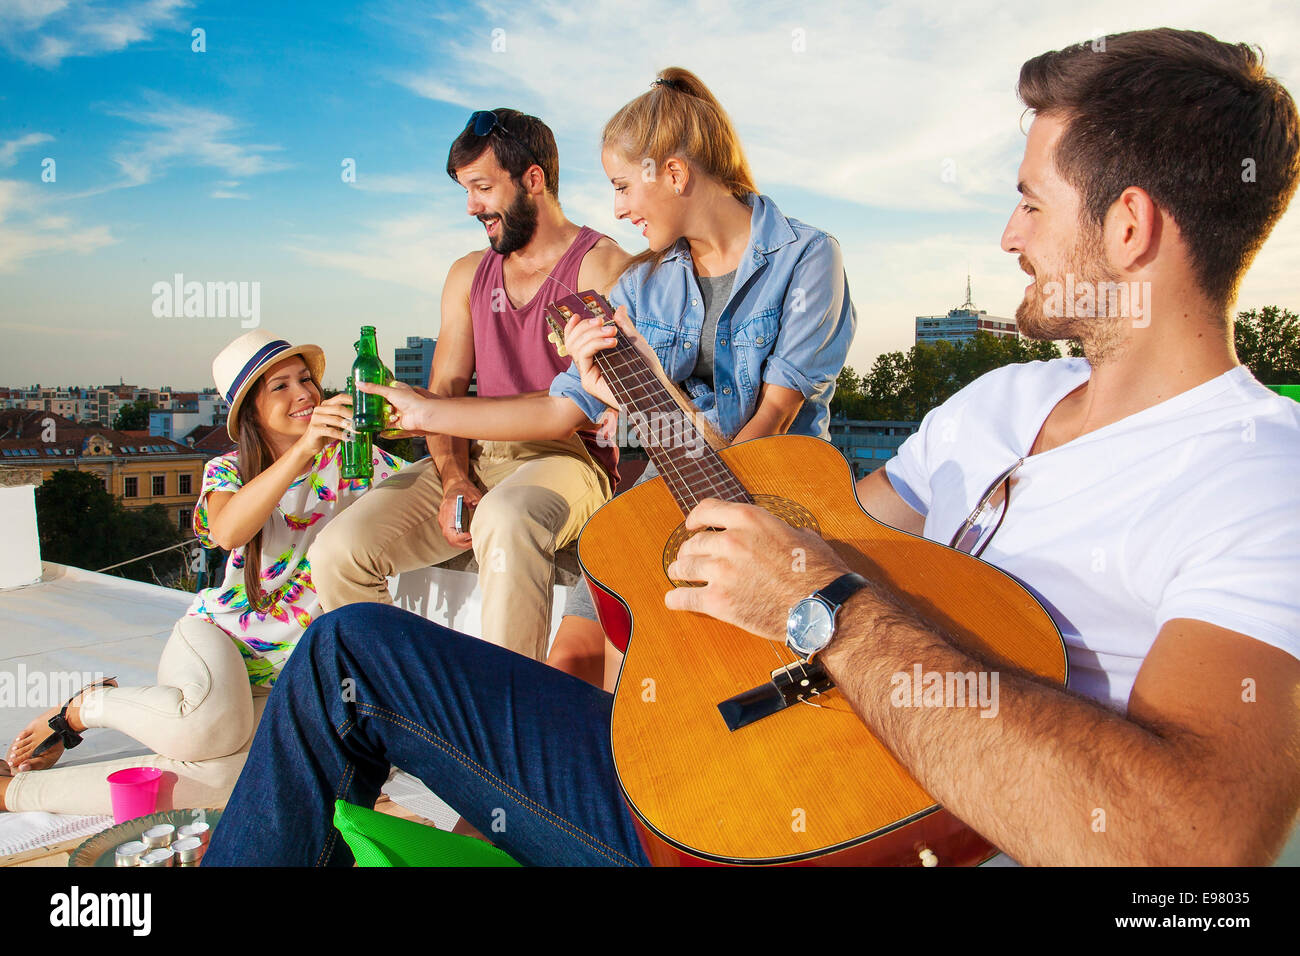 Young People Listening To Guitar Music At Rooftop Party